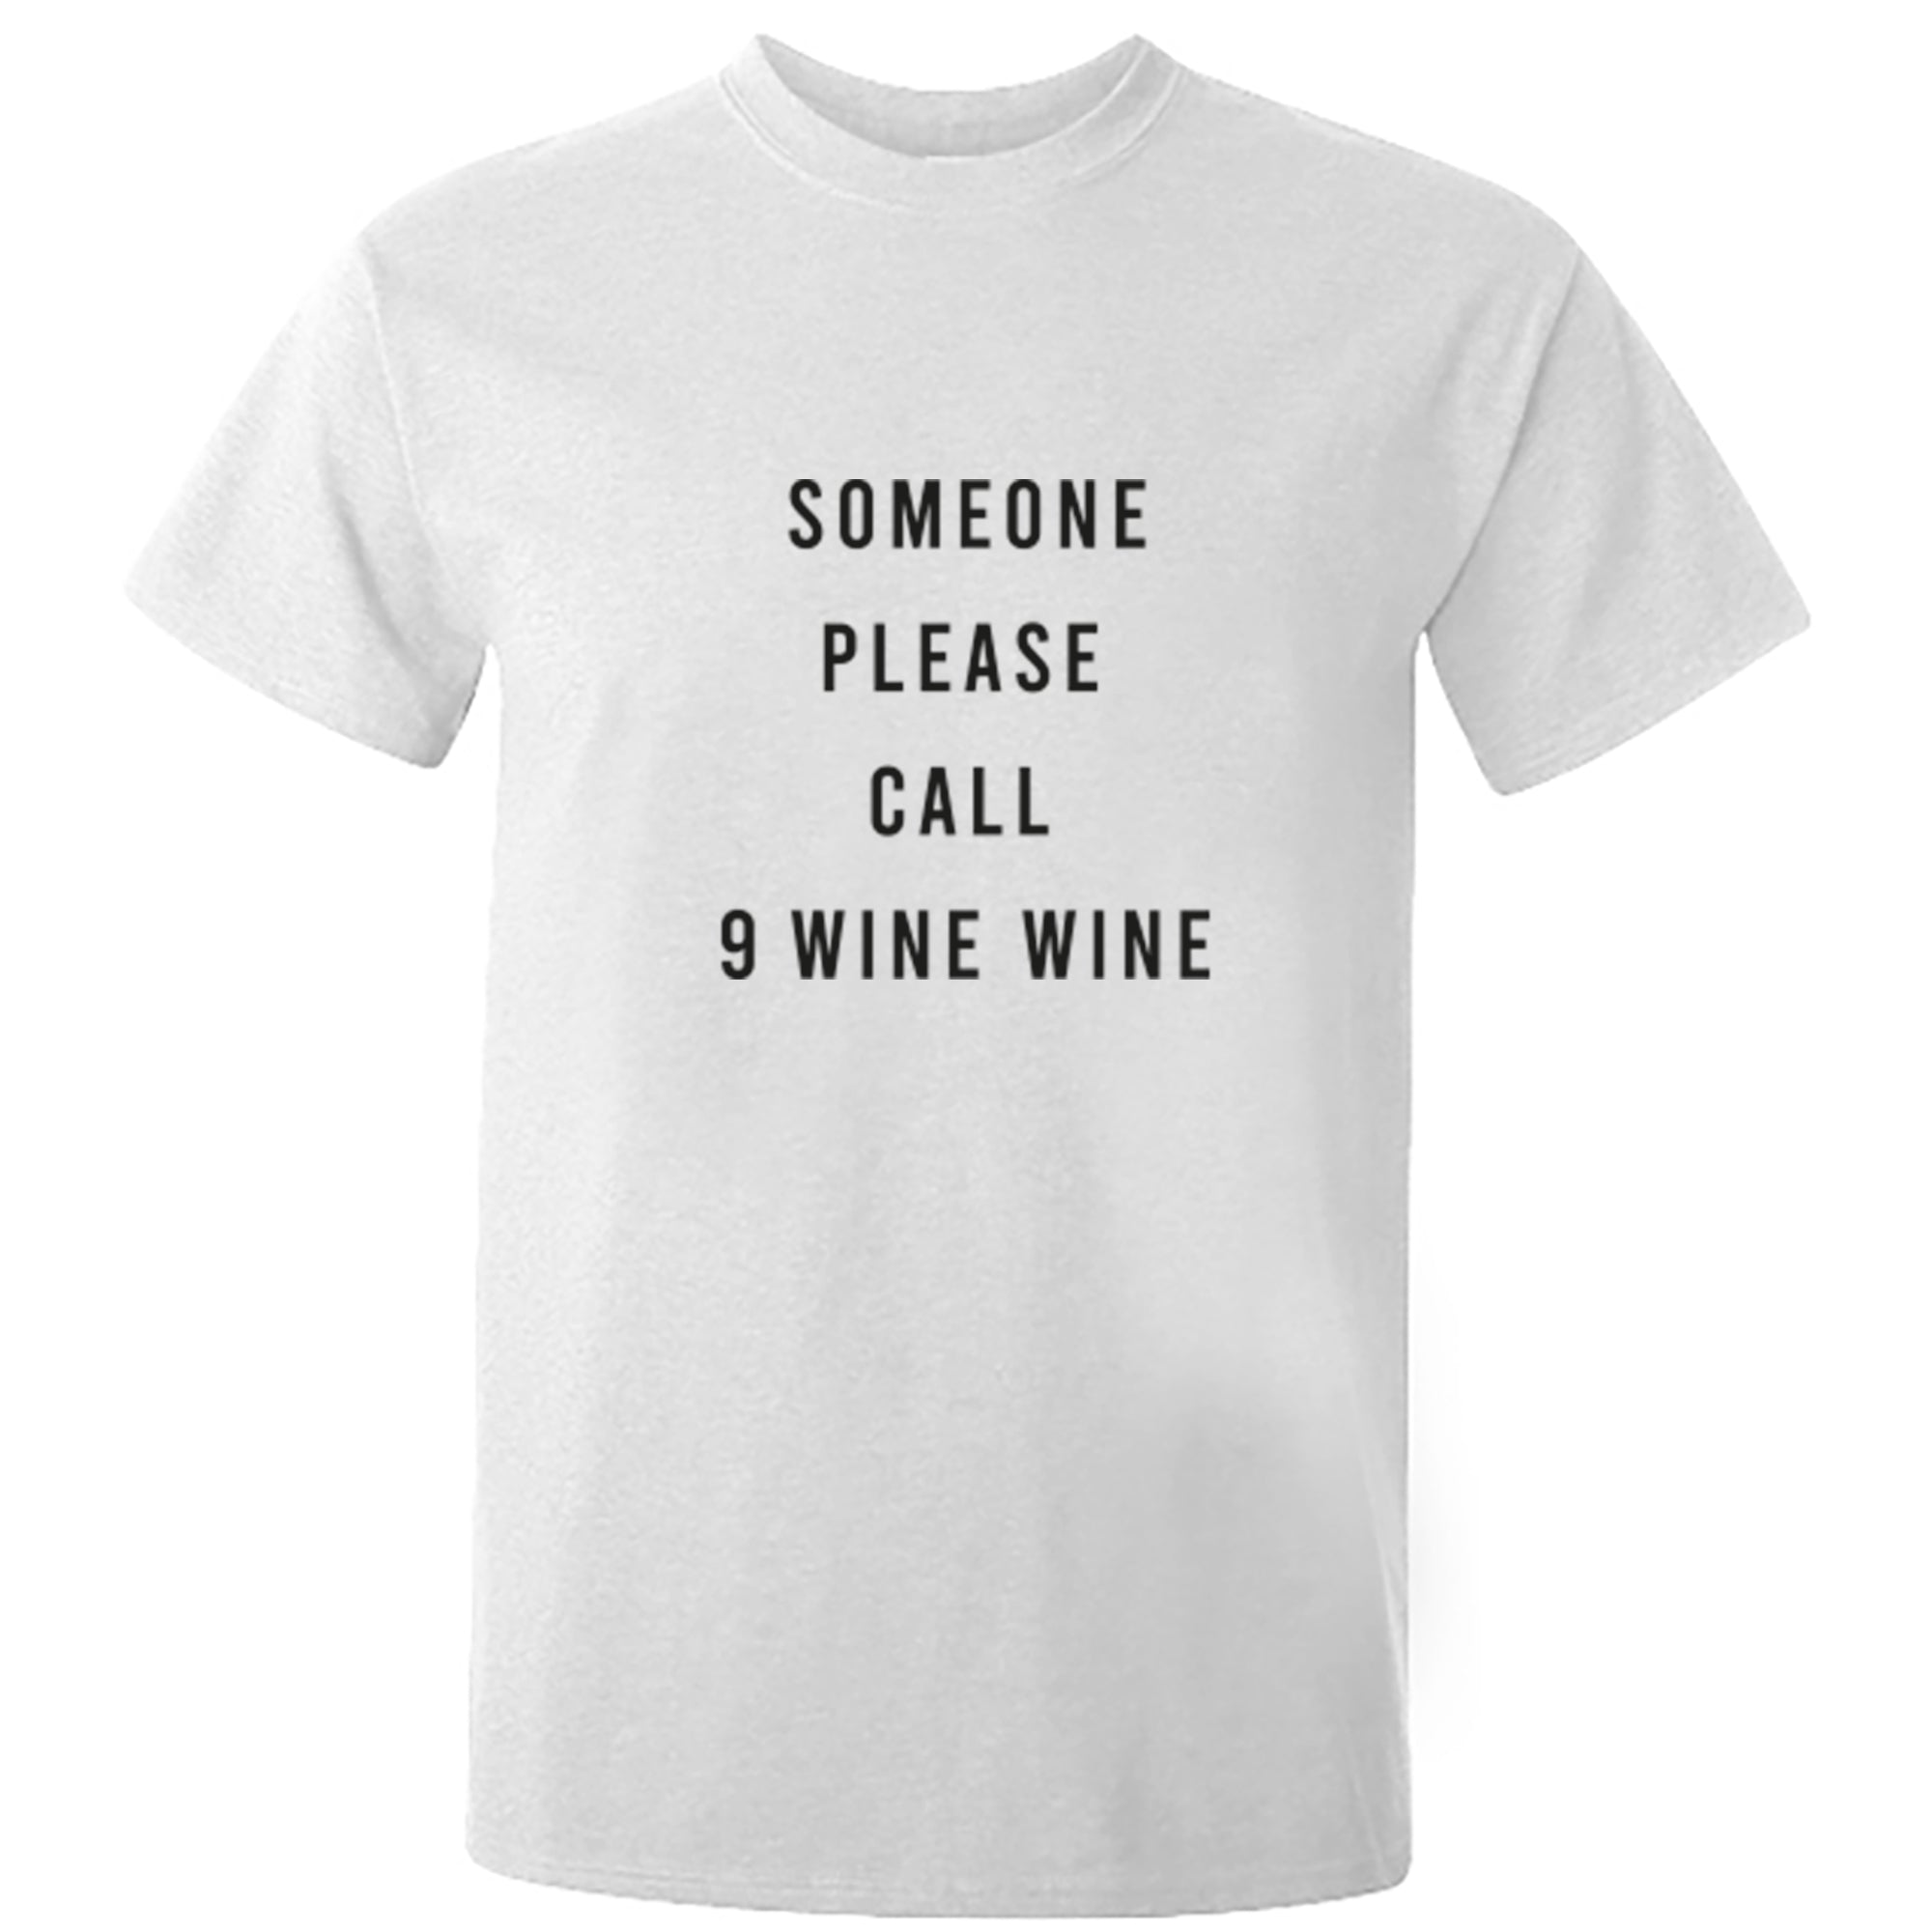 Someone Please Call 9 Wine Wine Unisex Fit T-Shirt S0915 - Illustrated Identity Ltd.